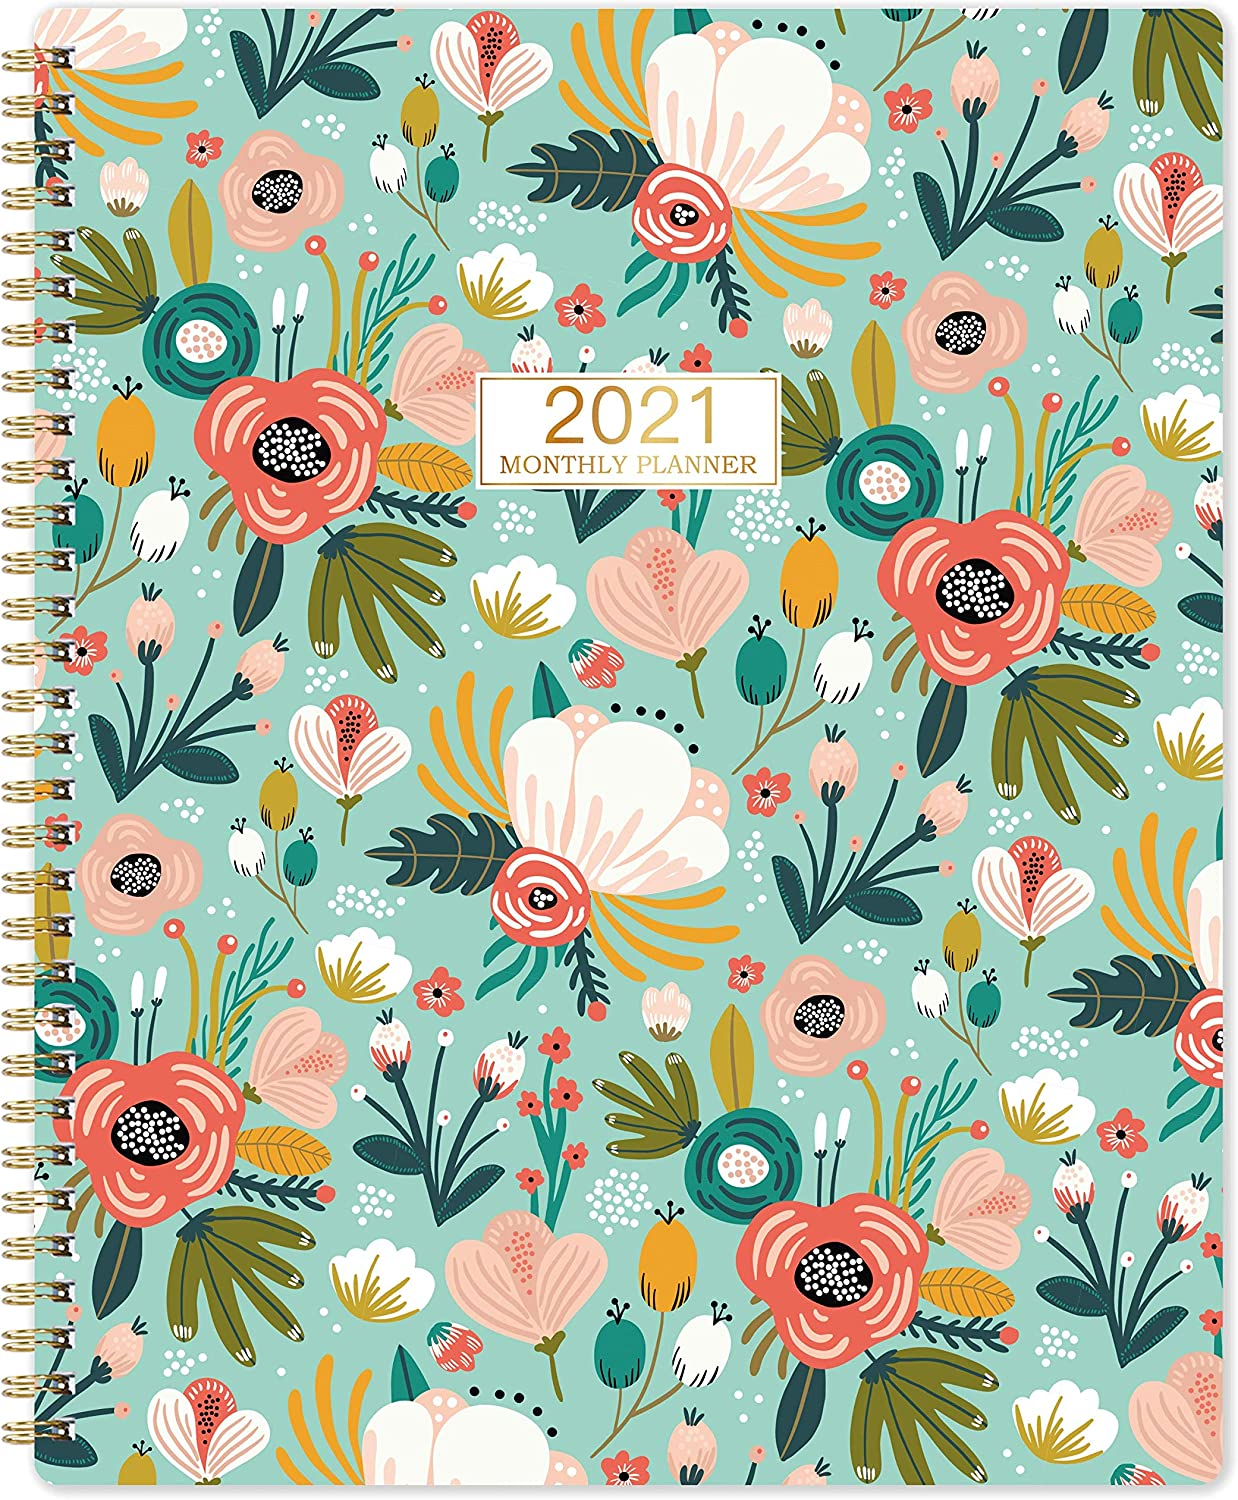 "2021 Monthly Planner/Calendar - 12-Month Planner with Tabs & Double Side Pocket & Label, Floral Calendar Planners, Contacts and Passwords, Jan 2021 - Dec 2021, 8.5""x 11"", Twin-Wire Binding"